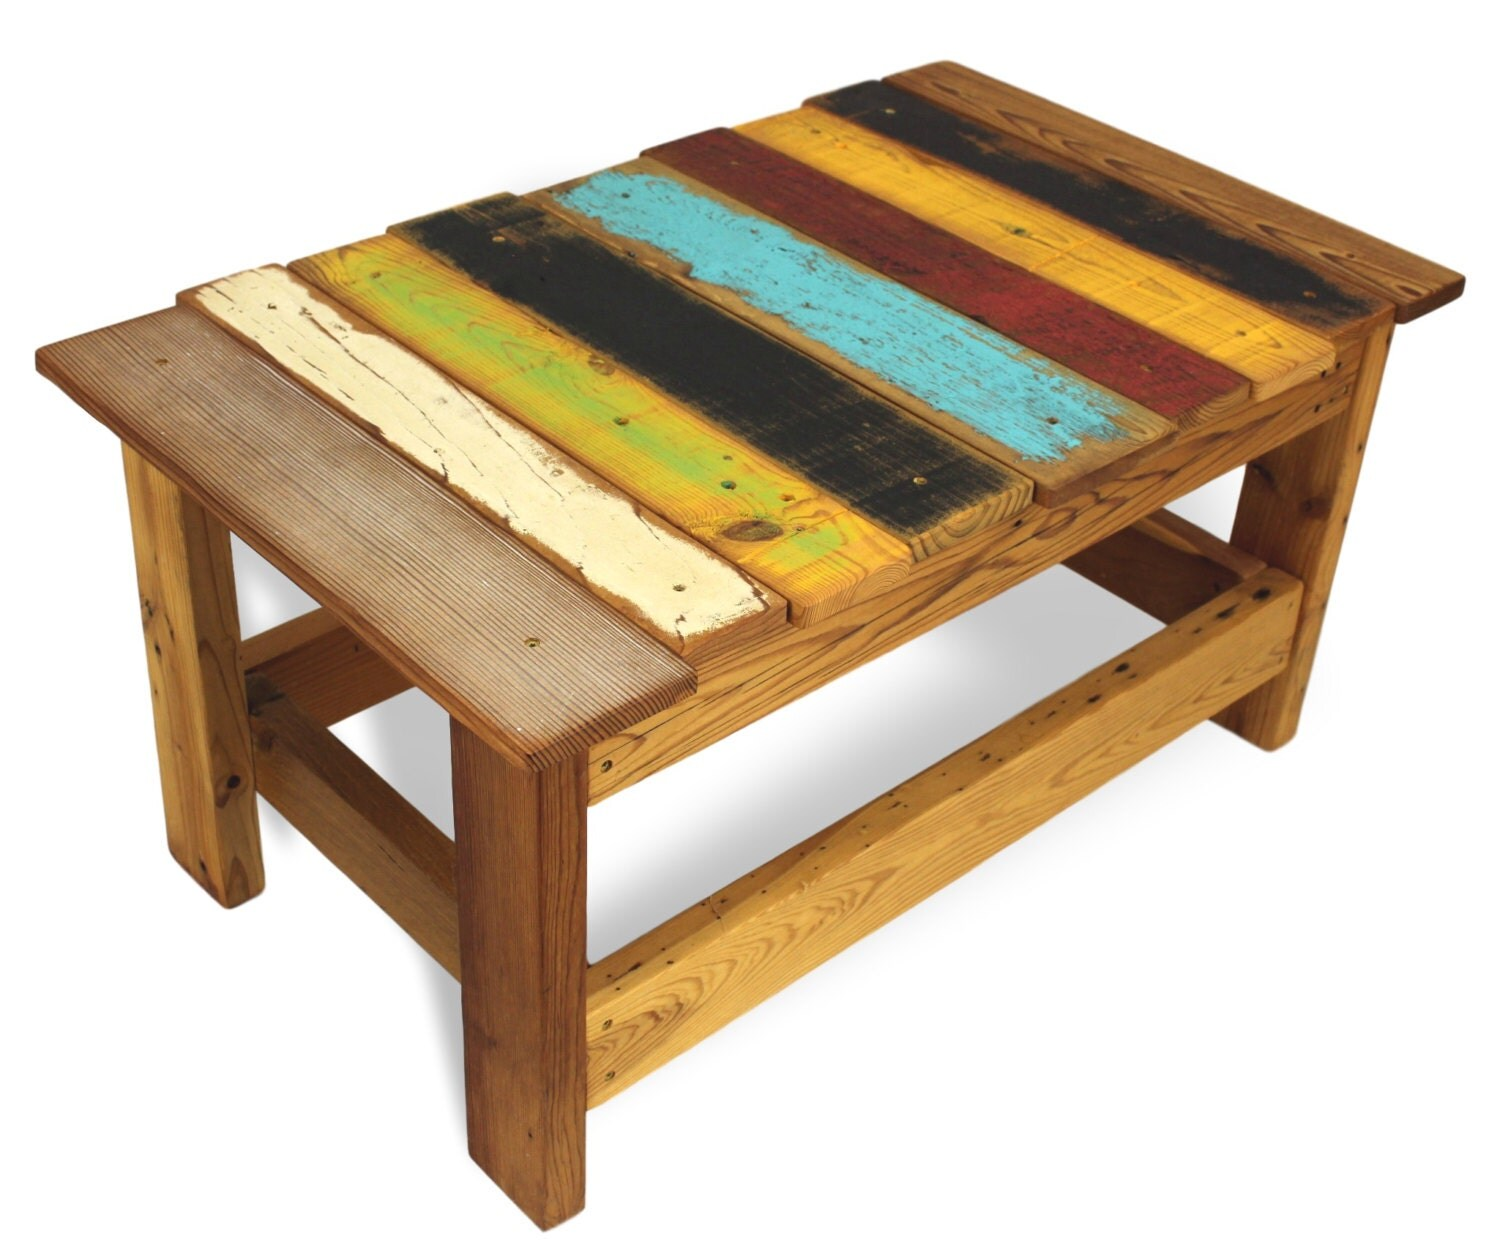 Rustic All Wood Coffee Table: Rustic Coffee Table Salvaged Wood Table Reclaimed Wood